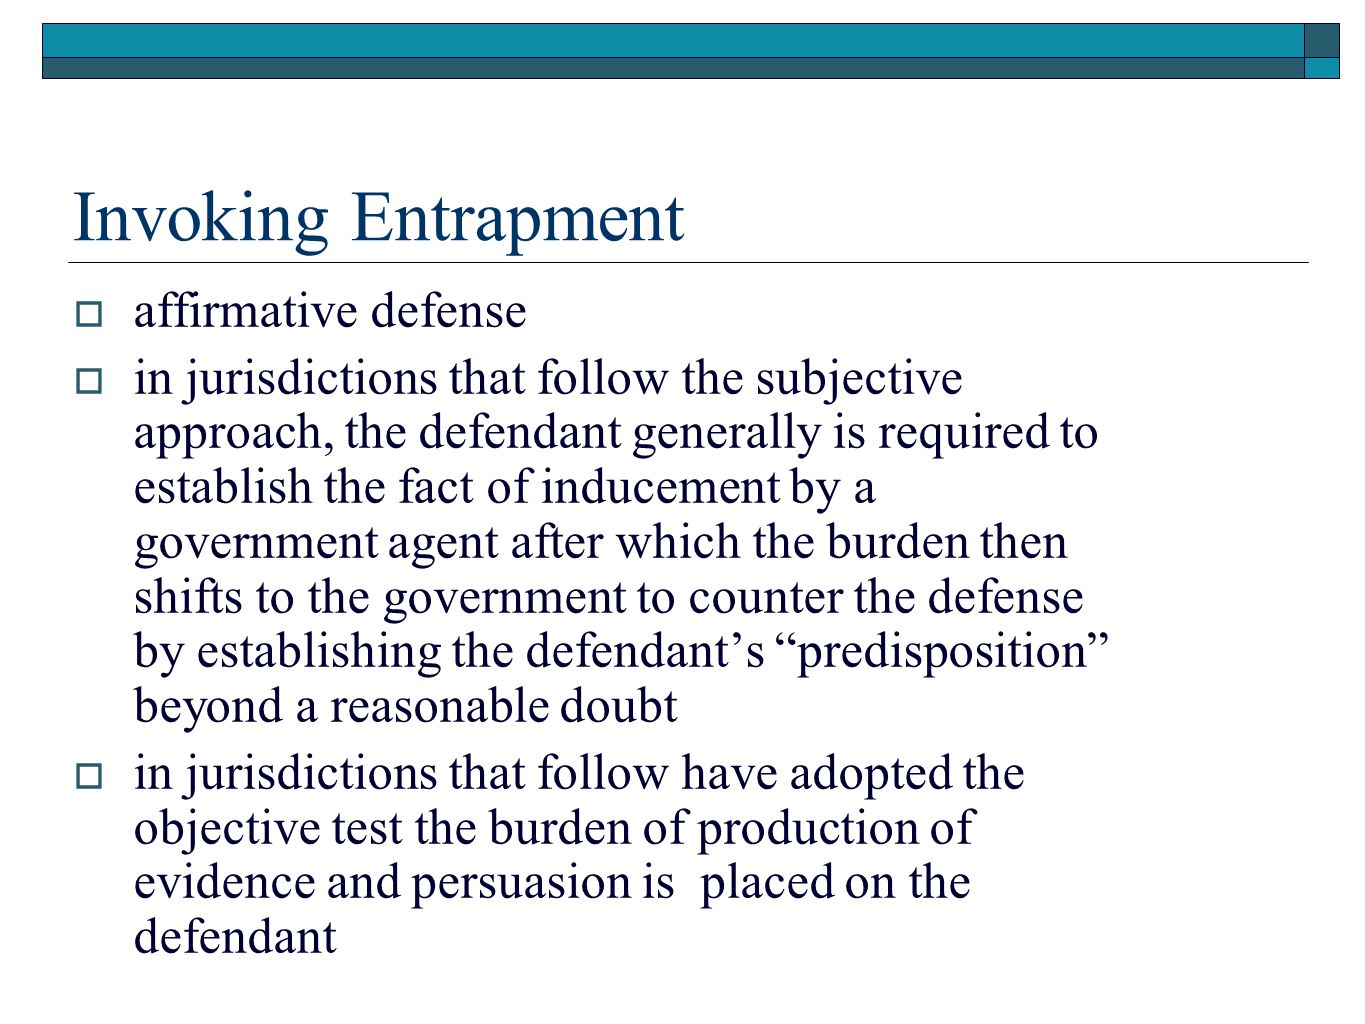 Invoking Entrapment  affirmative defense  in jurisdictions that follow the subjective approach, the defendant generally is required to establish the fact of inducement by a government agent after which the burden then shifts to the government to counter the defense by establishing the defendant's predisposition beyond a reasonable doubt  in jurisdictions that follow have adopted the objective test the burden of production of evidence and persuasion is placed on the defendant